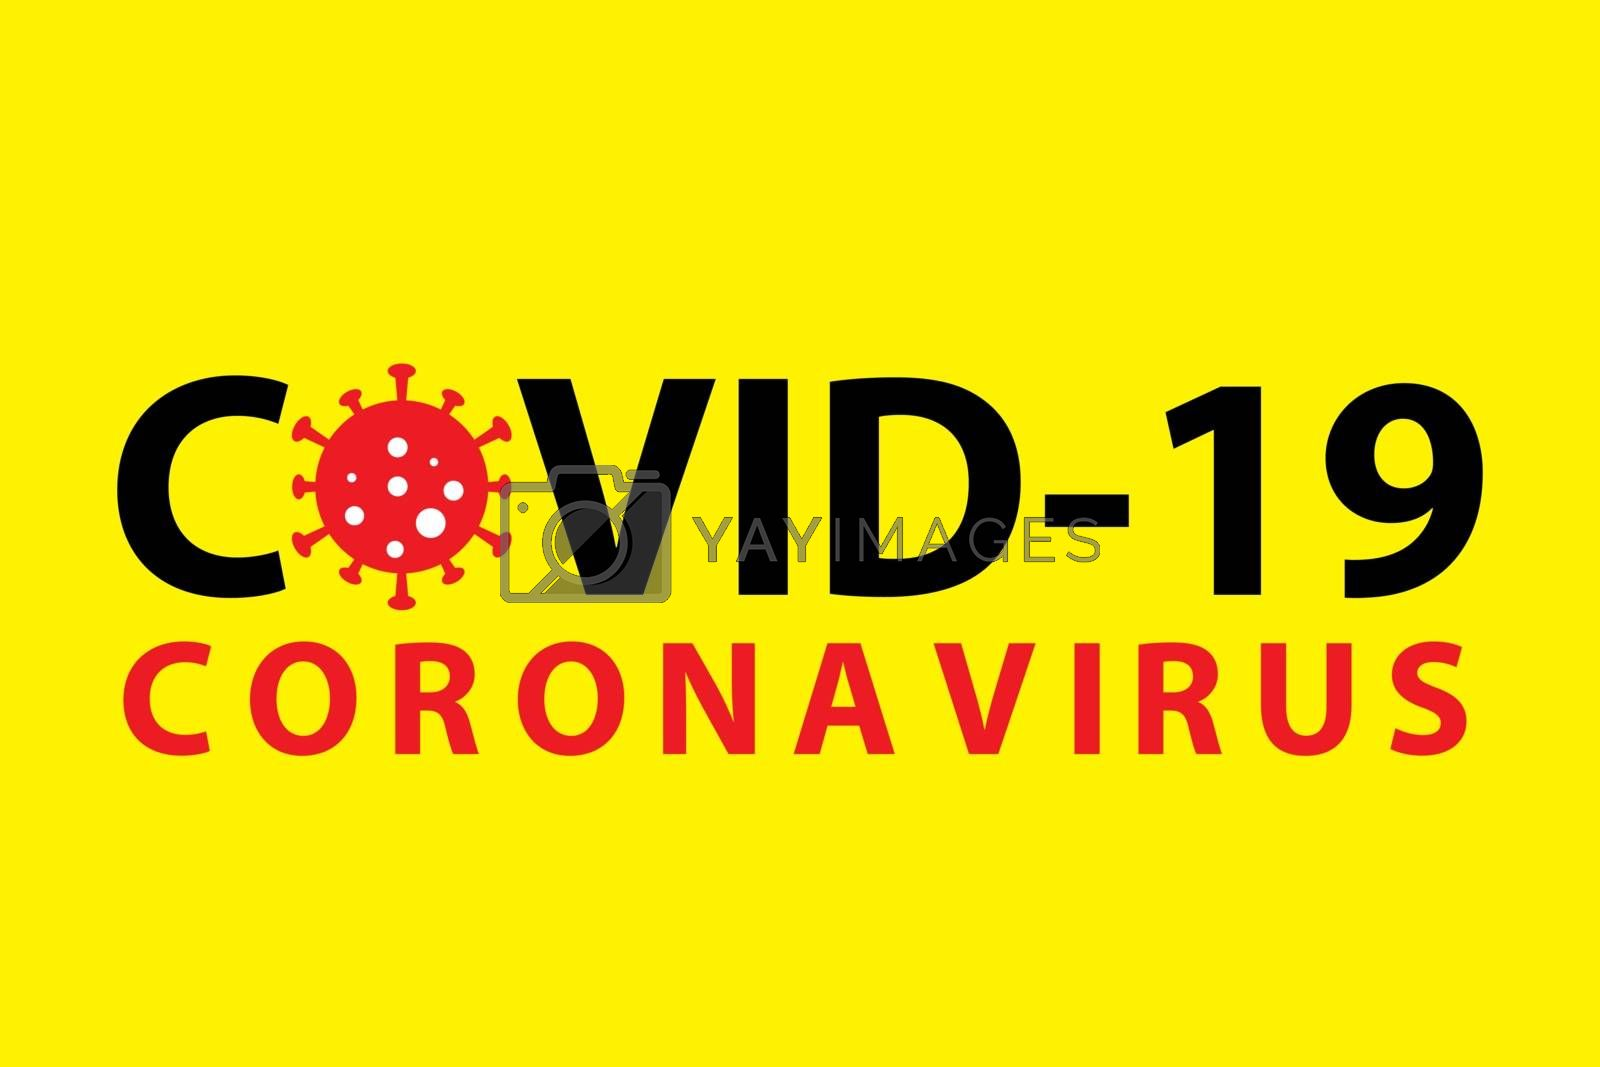 Covid-19 coronavirus pandemic outbreak banner. Yellow minimal background. Stay at home quarantine concept. Health care and medical vector.